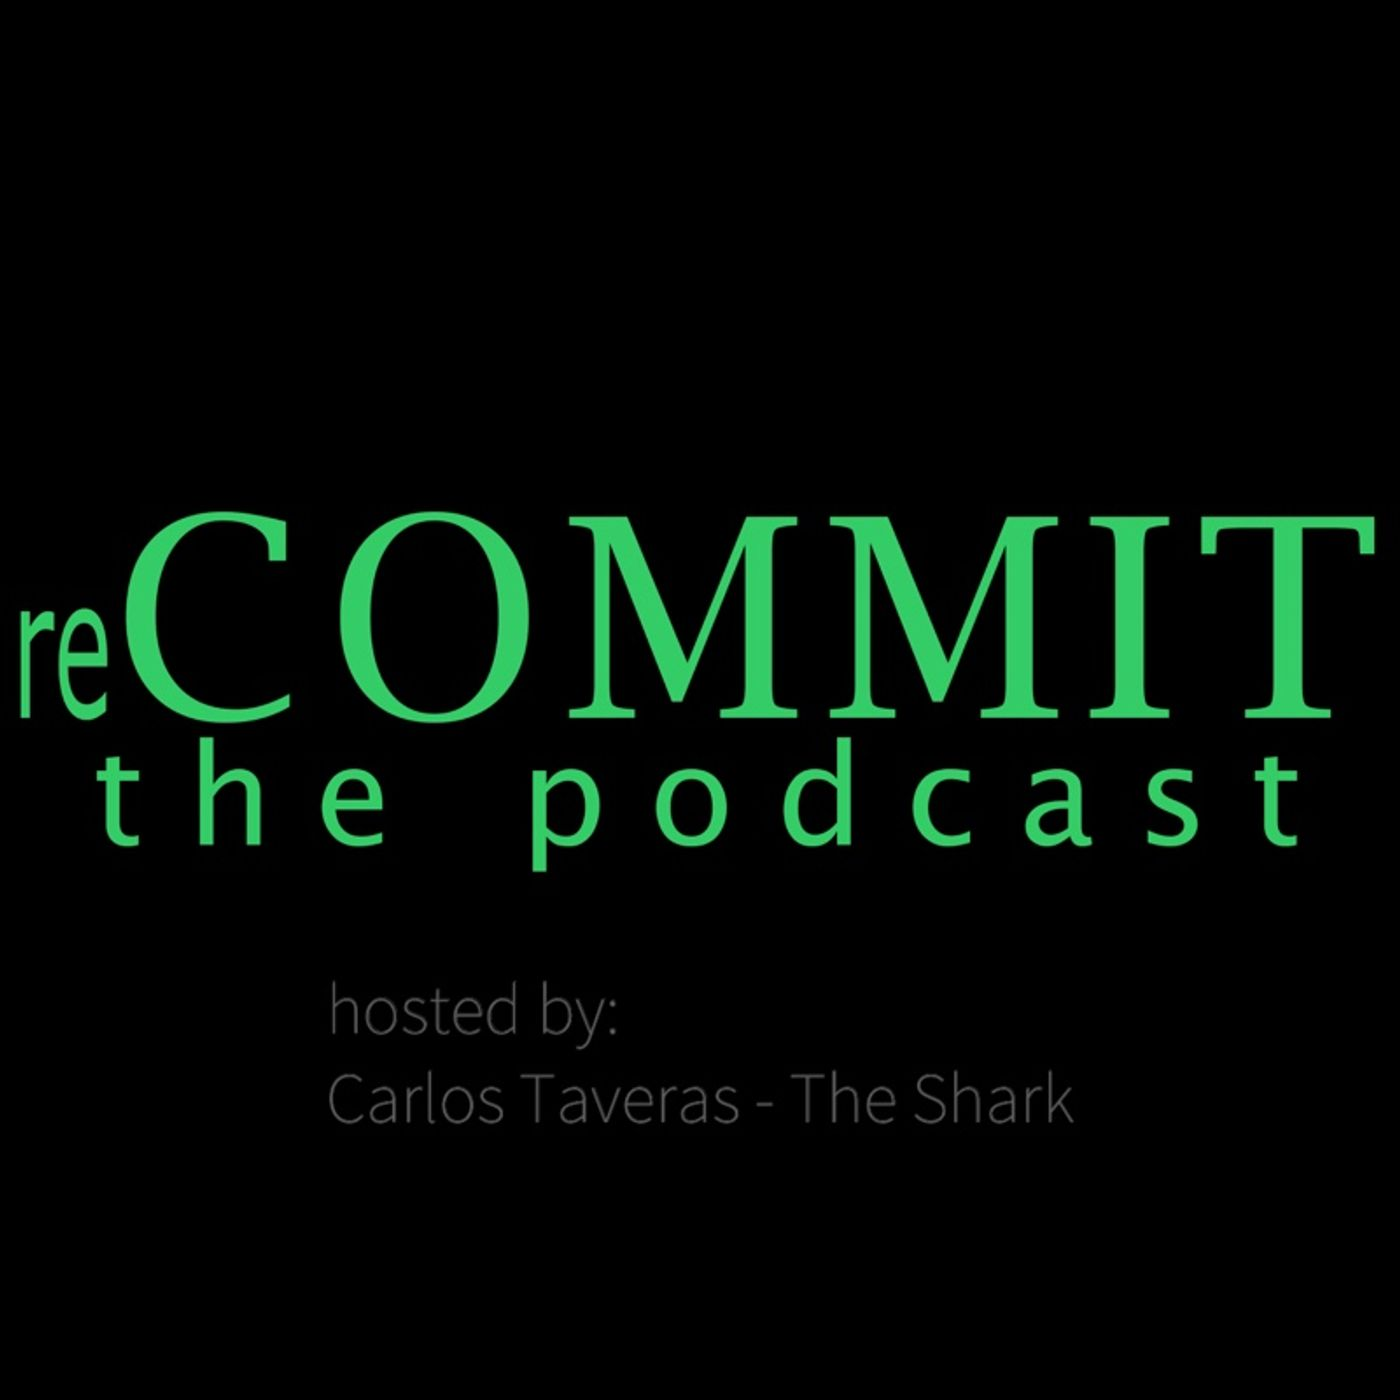 reCOMMIT The Podcast - E03: The Hamilton Effect